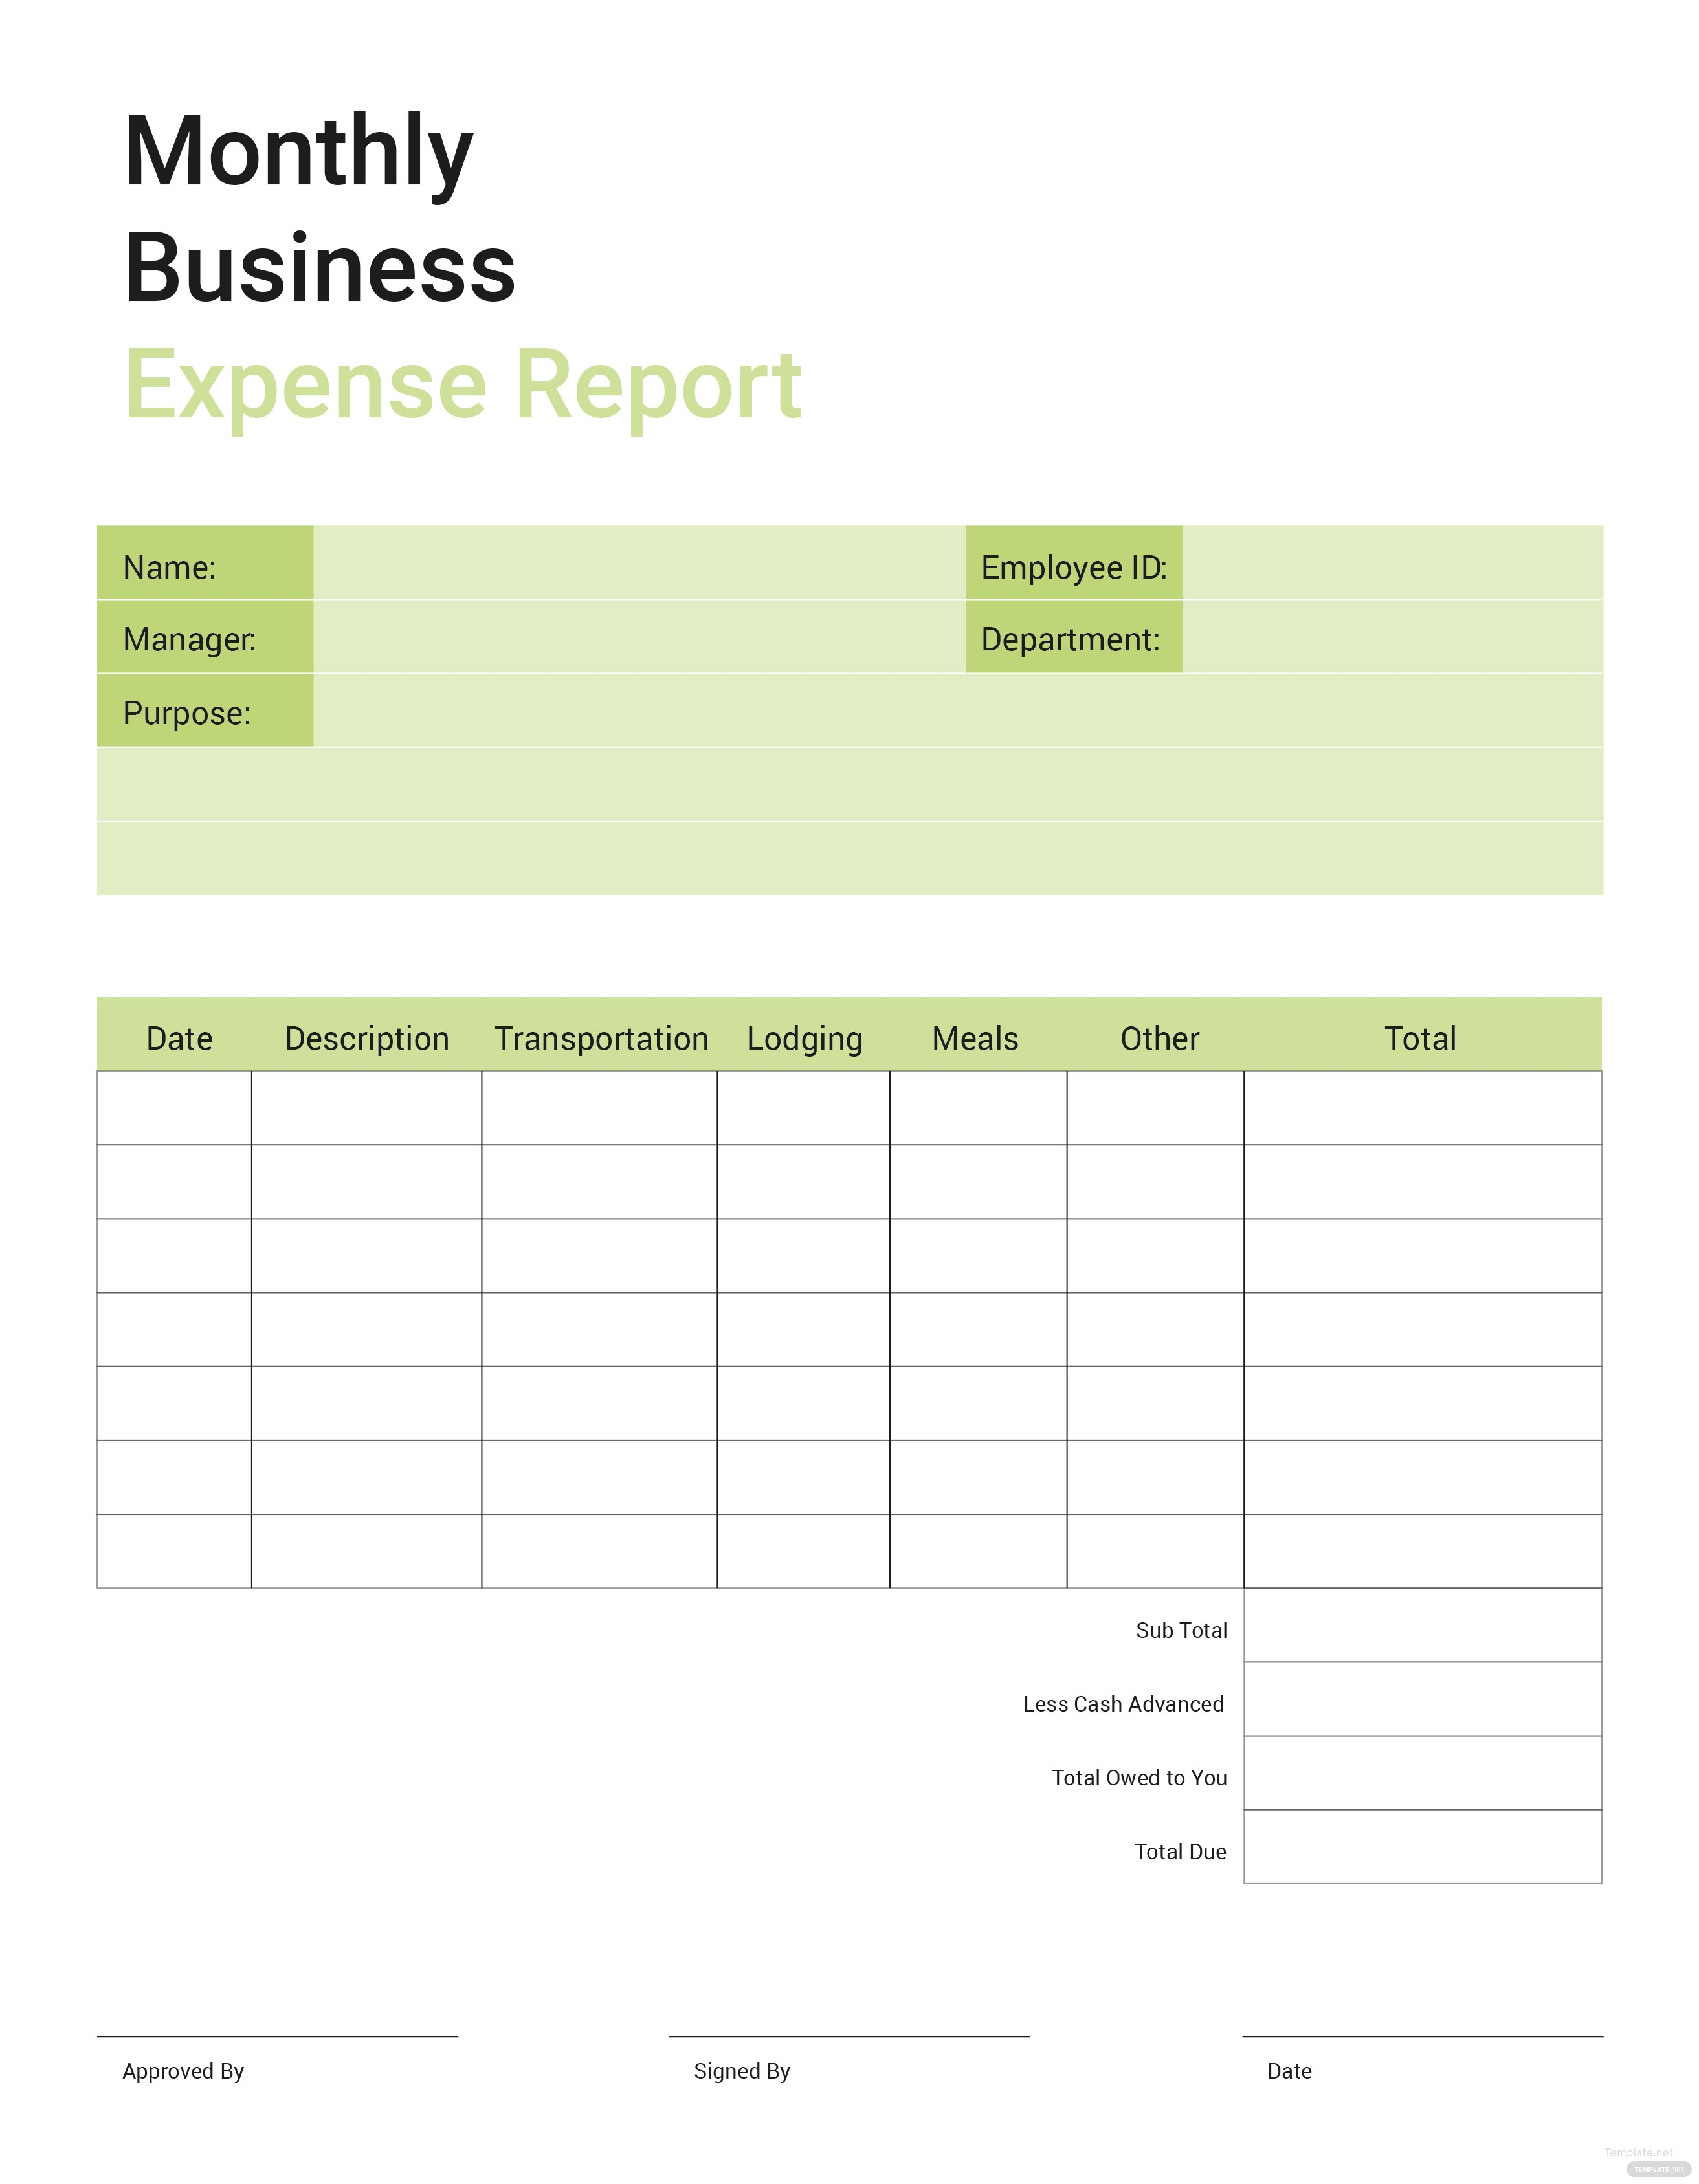 Free business expense report template in microsoft word microsoft business expense report template flashek Image collections